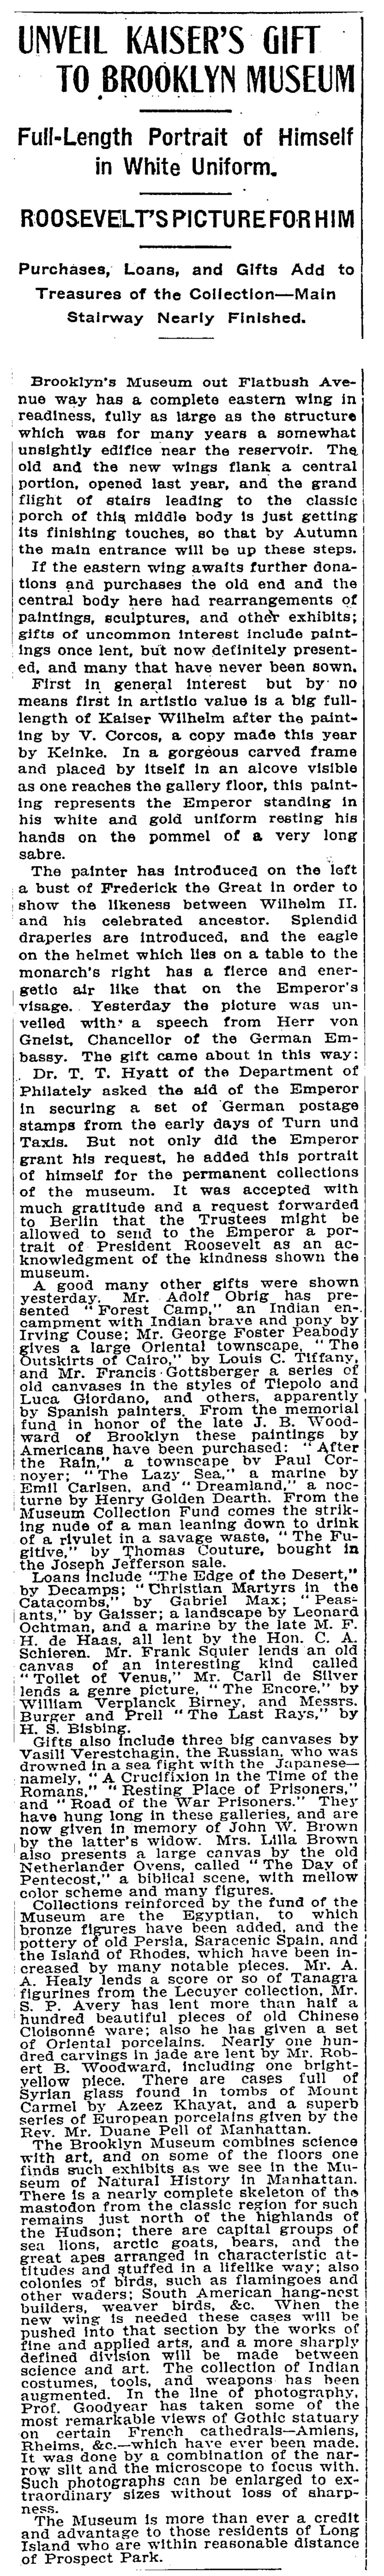 "The New York Times, New York, NY, ""Unveil Kaiser's Gift To Brooklyn Museum"", June 17, 1906, not illustrated"